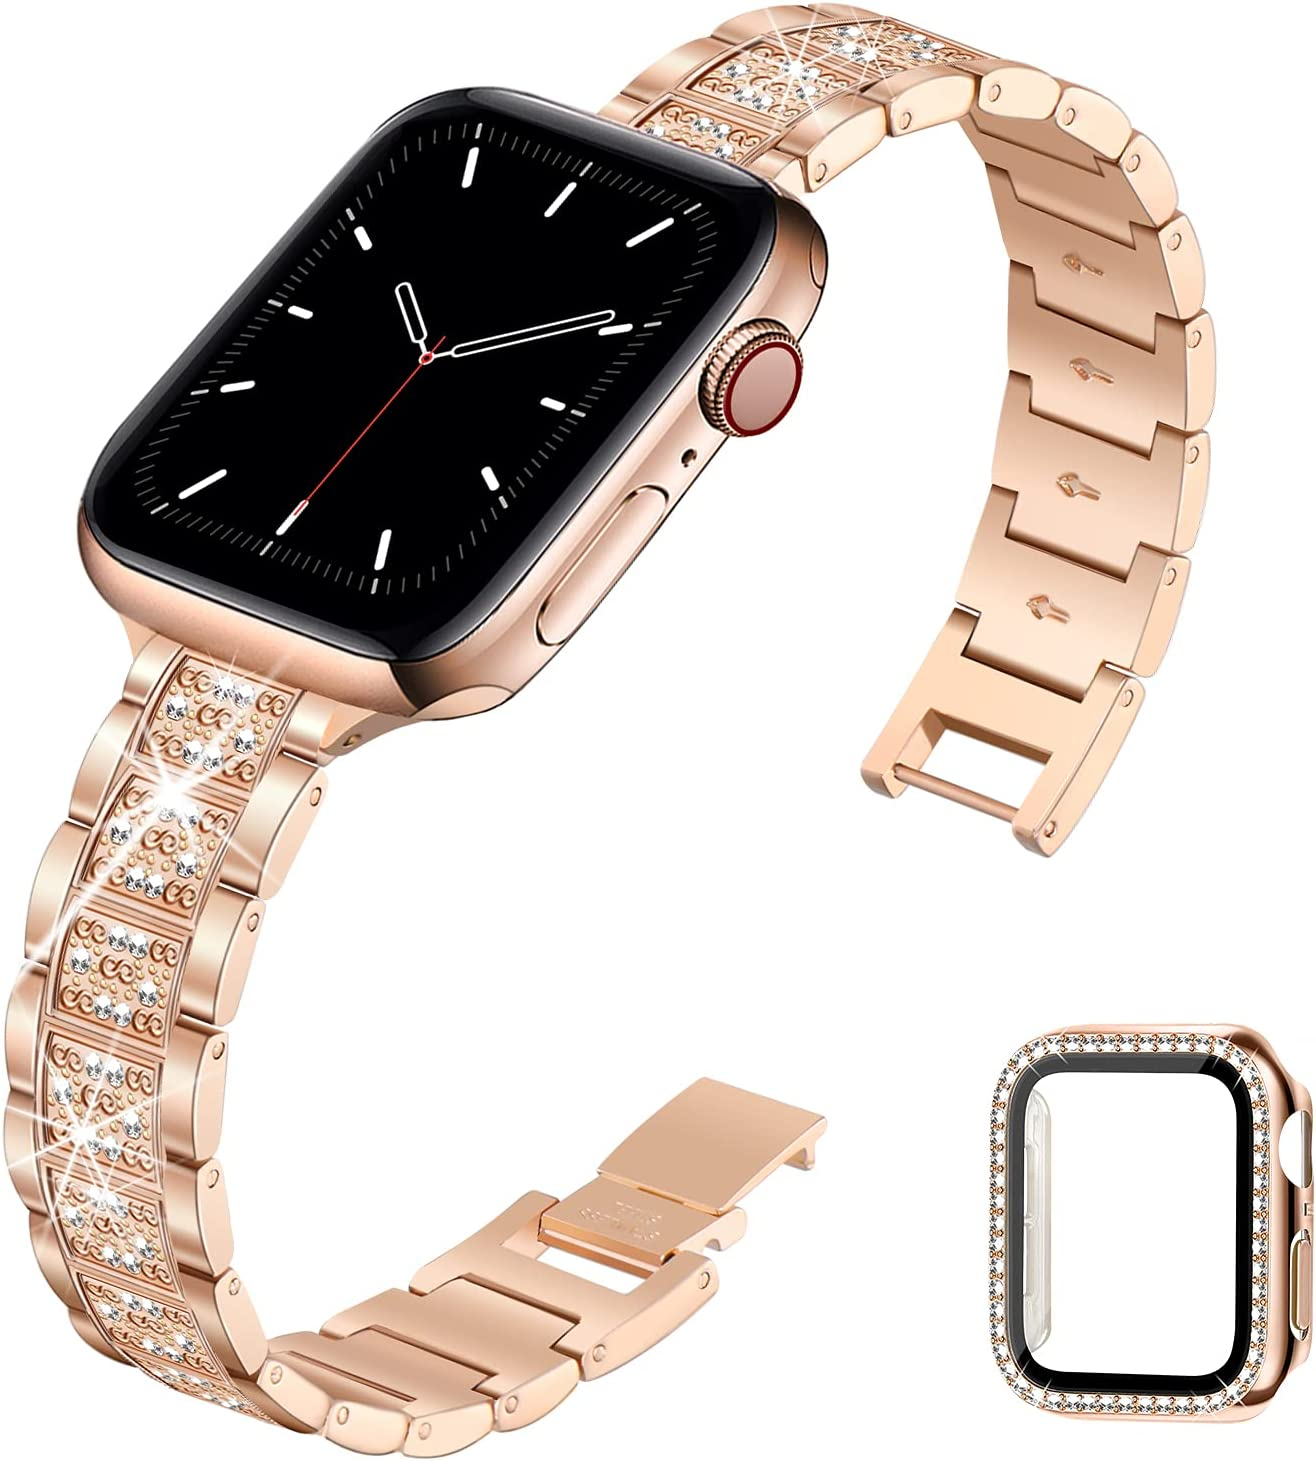 STIROLL Bling Band Compatible with Apple Watch Band 38mm 40mm 42mm 44mm, Jewelry Metal Replacement Strap for iWatch SE Series 6/5/4/3/2/1 Women Men(Rose Gold, 38mm)